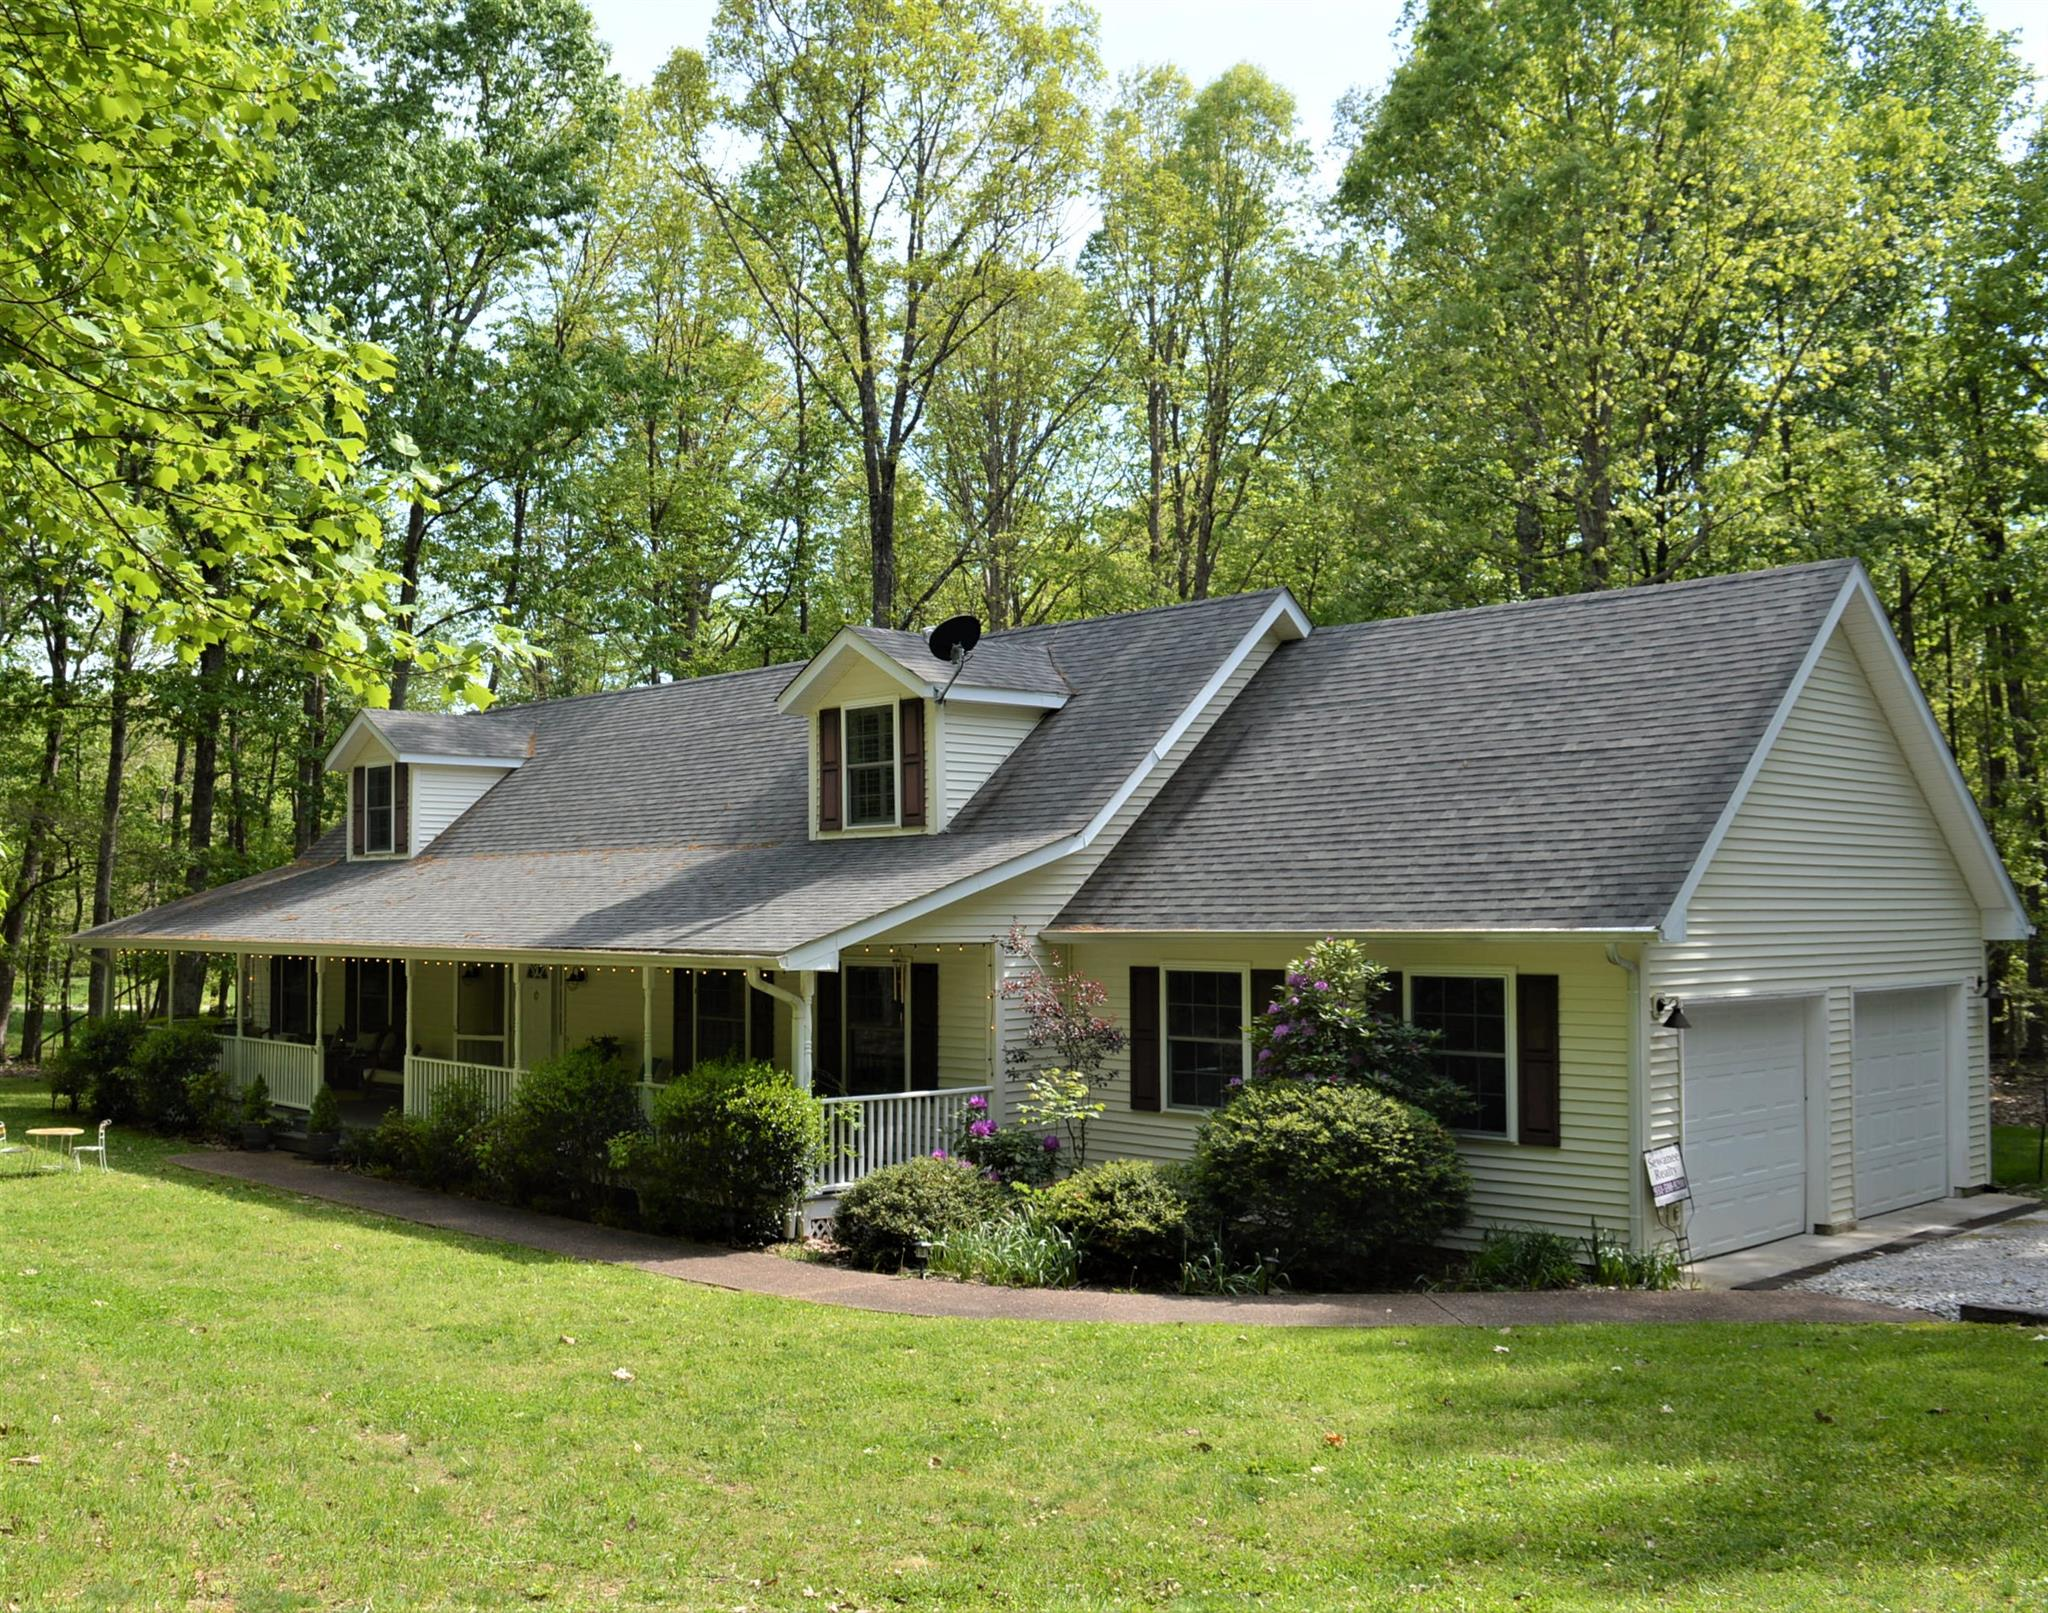 310 Wiggins Creek Drive, Sewanee, TN 37375 - Sewanee, TN real estate listing